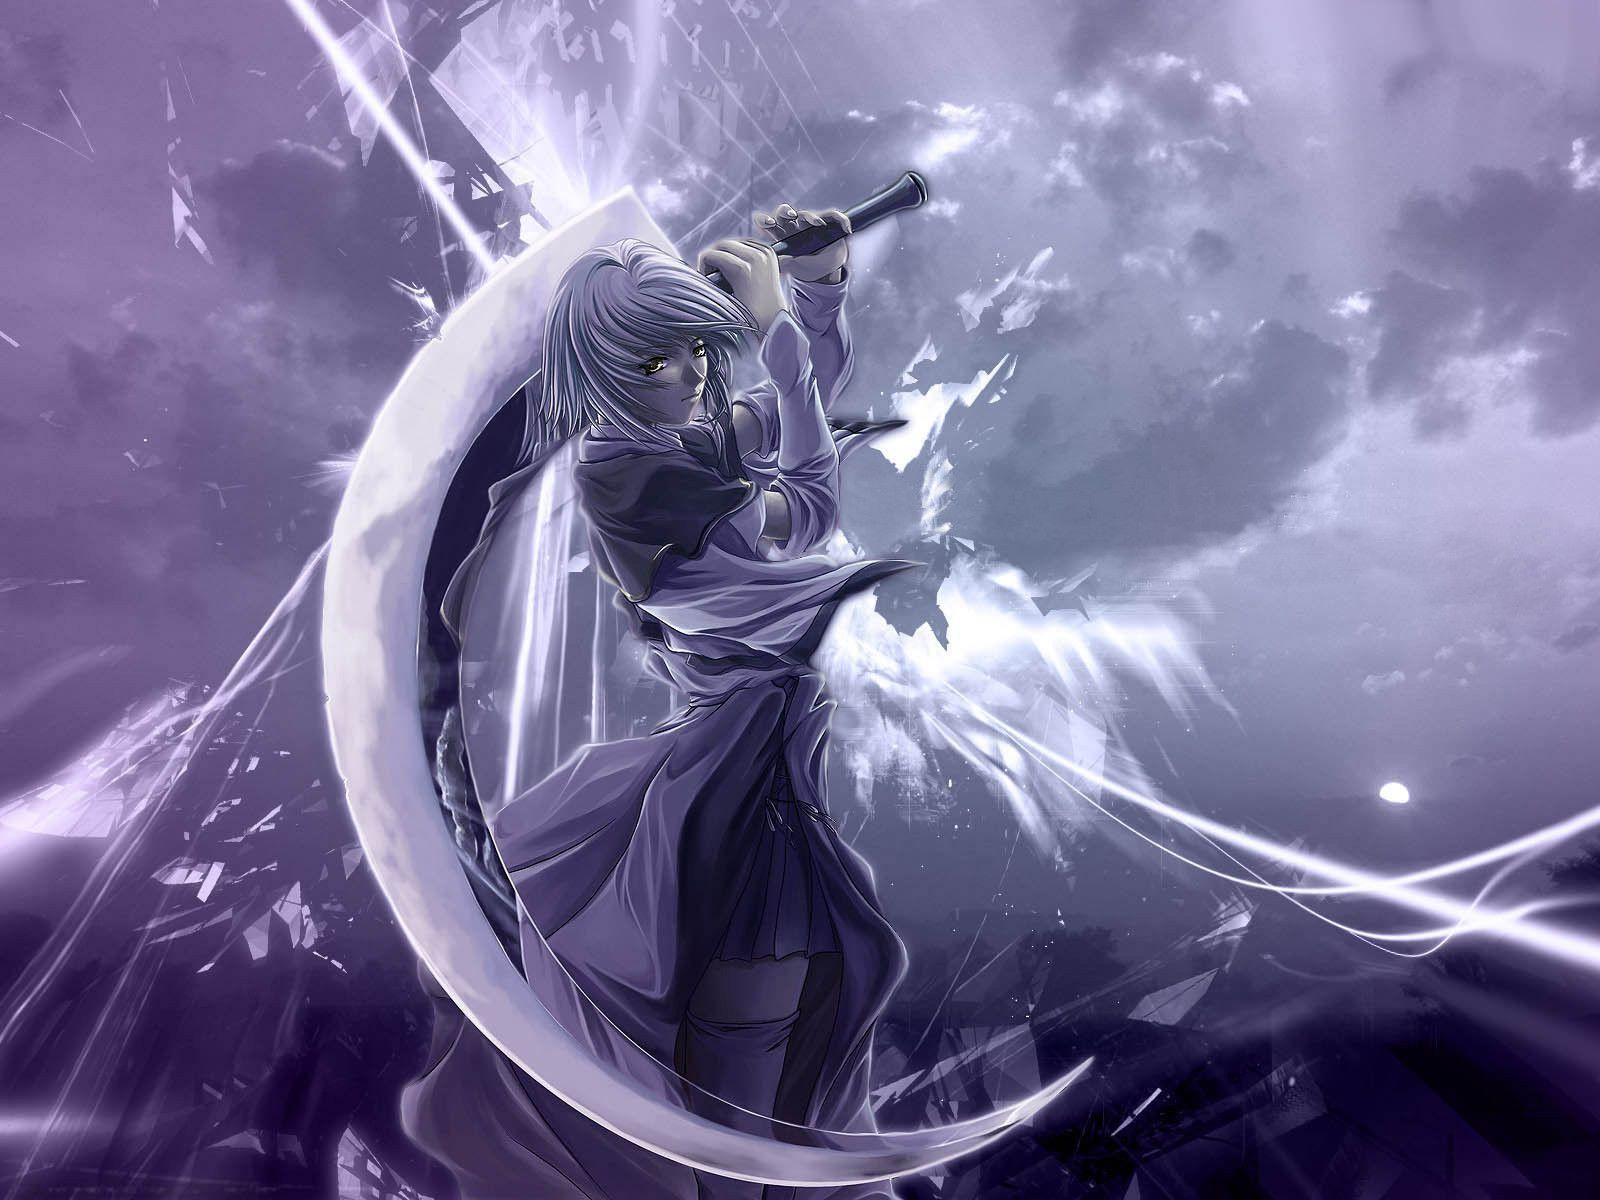 17 Cool Anime Wallpaper Backgrounds Pics Cool Anime Pictures Anime Wallpaper Cool Anime Wallpapers 17 by wallpapers anime